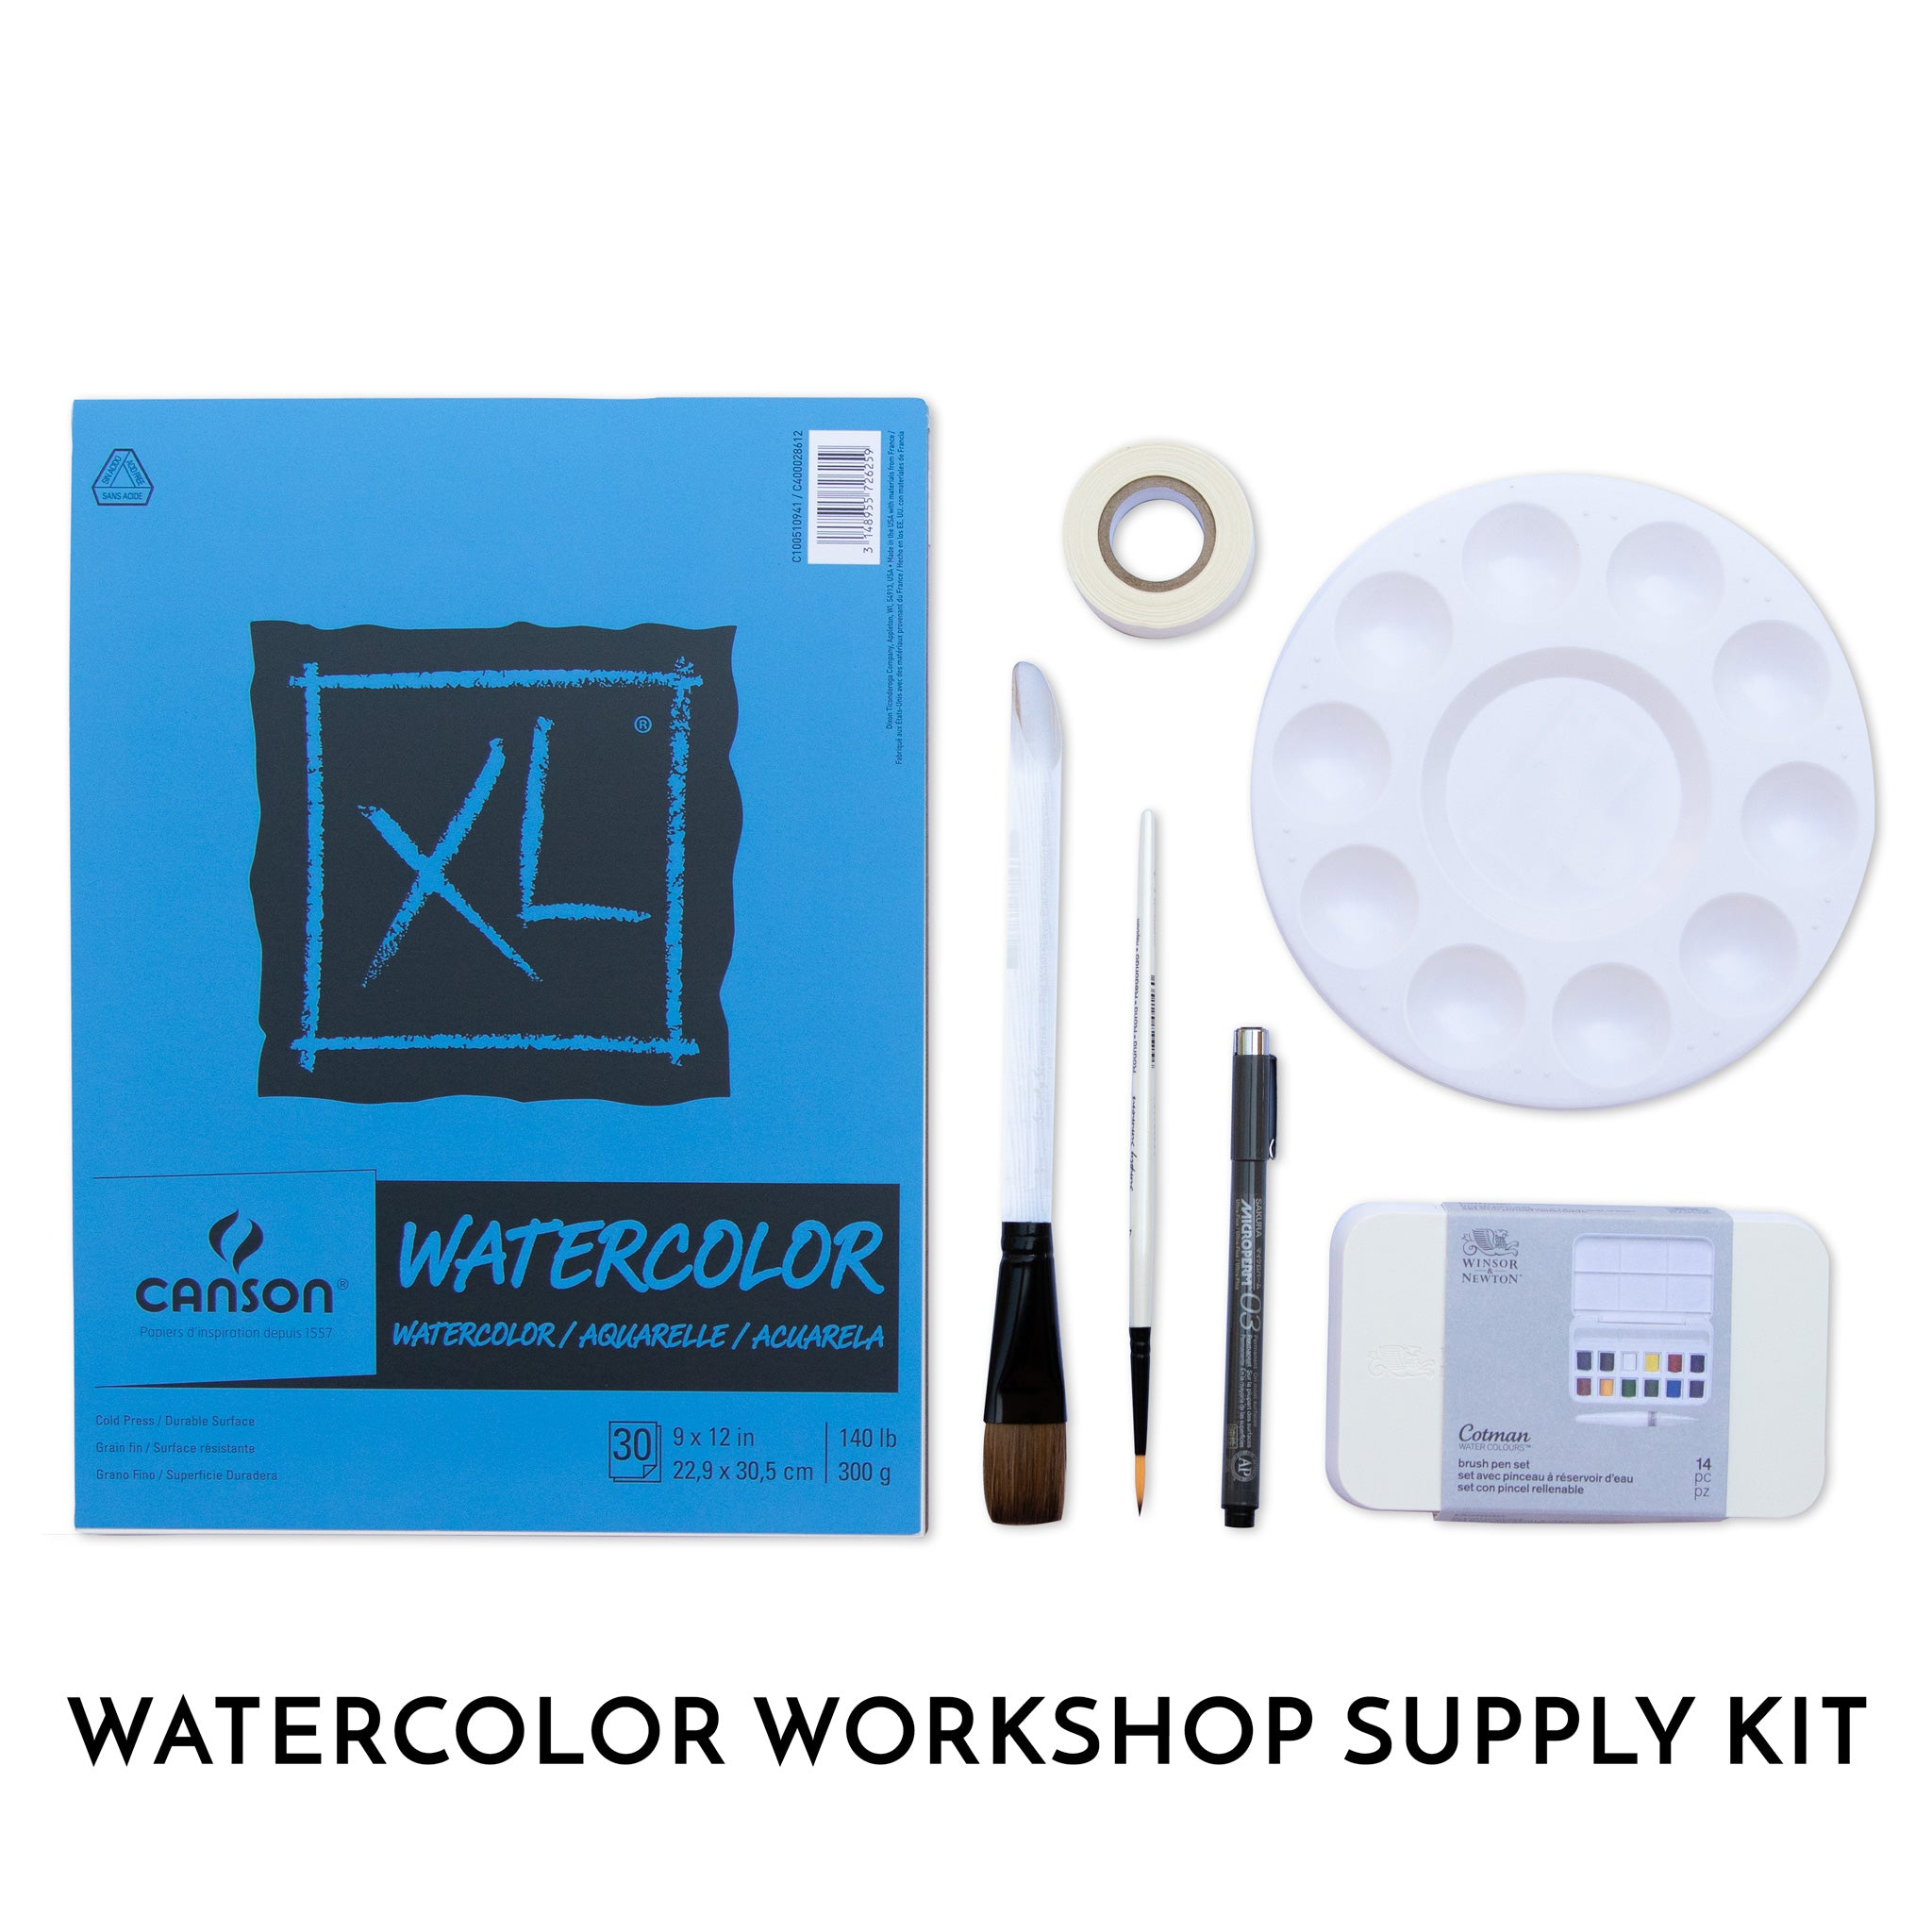 Supply Kit for Our Watercolor Workshops - by K. A. Artist Shop Classroom - K. A. Artist Shop